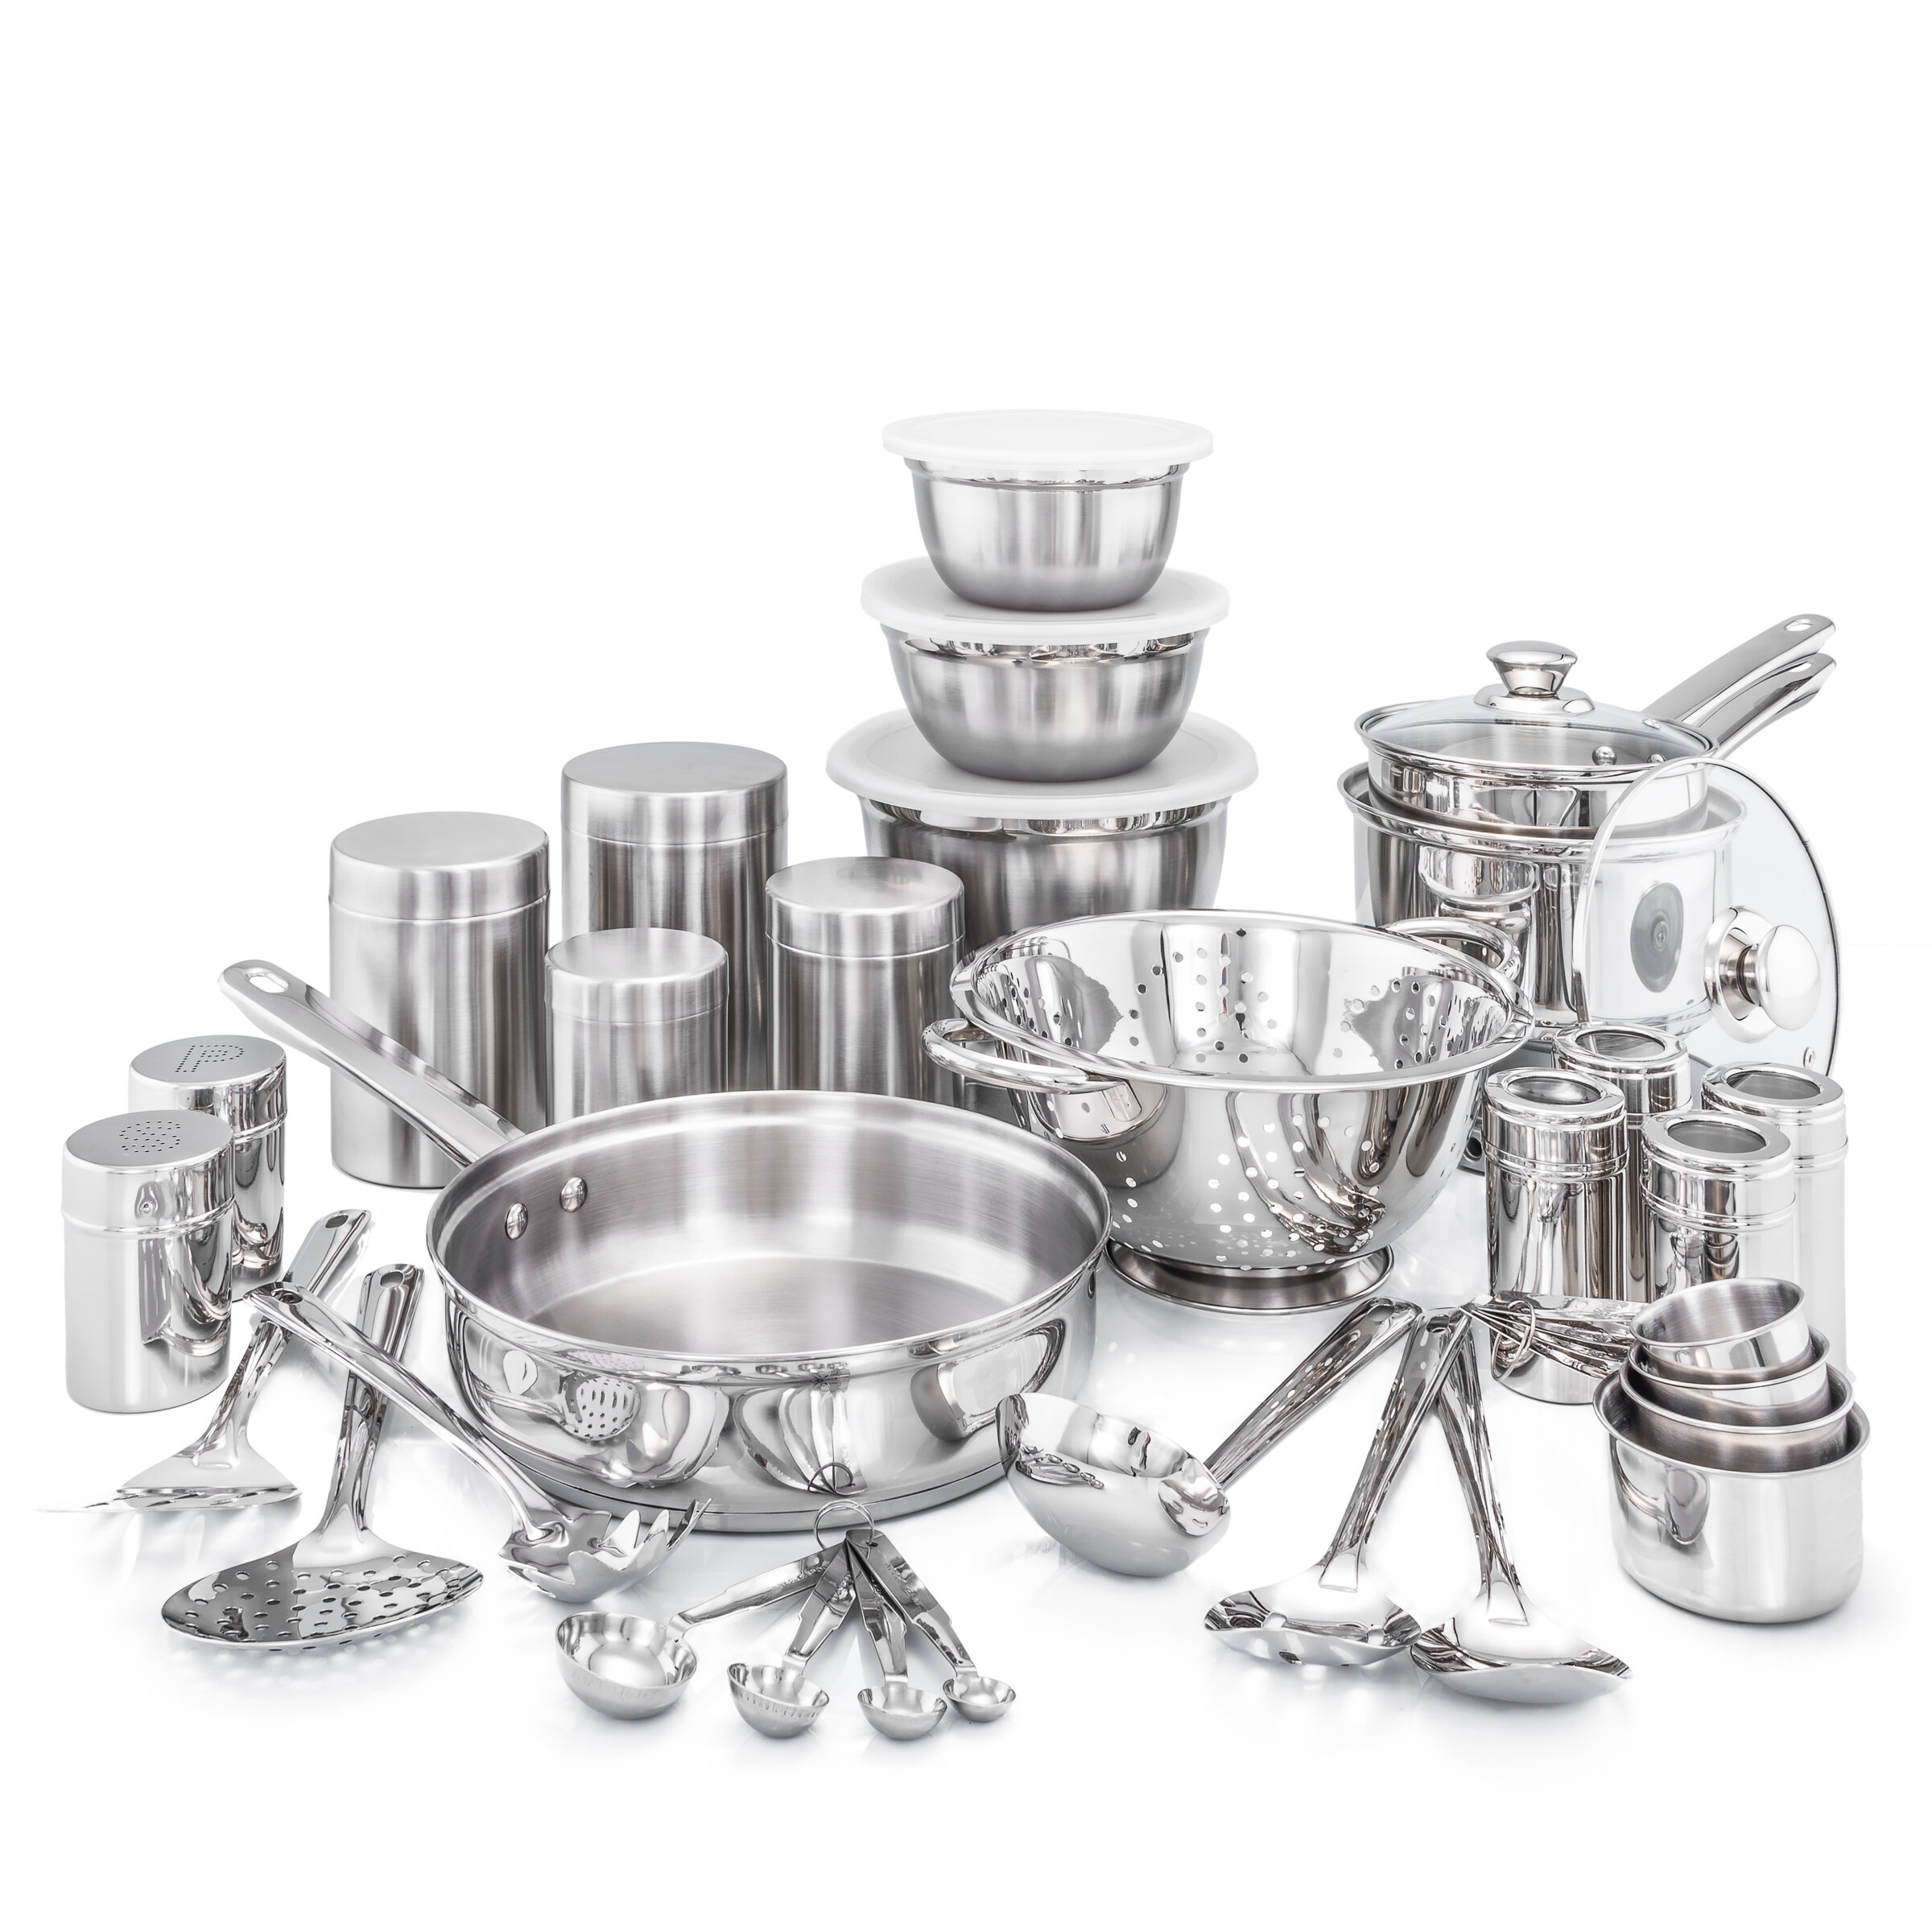 What Is Stainless Steel Made Of >> 36 Piece Kitchen In A Box Stainless Steel Cookware Set